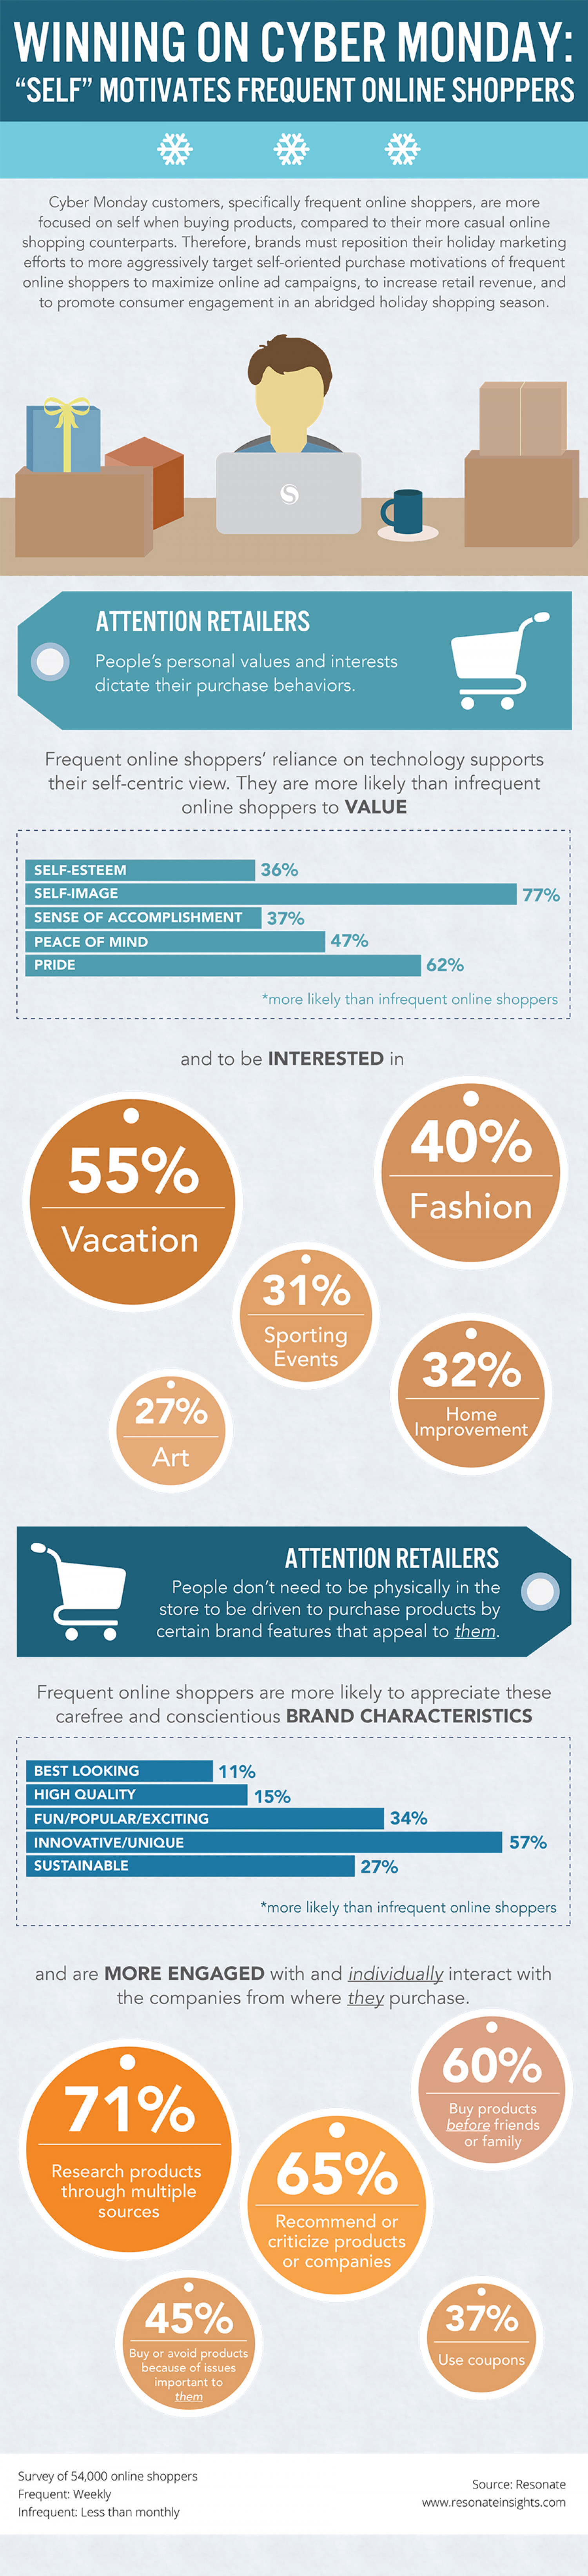 Winning on Cyber Monday Infographic